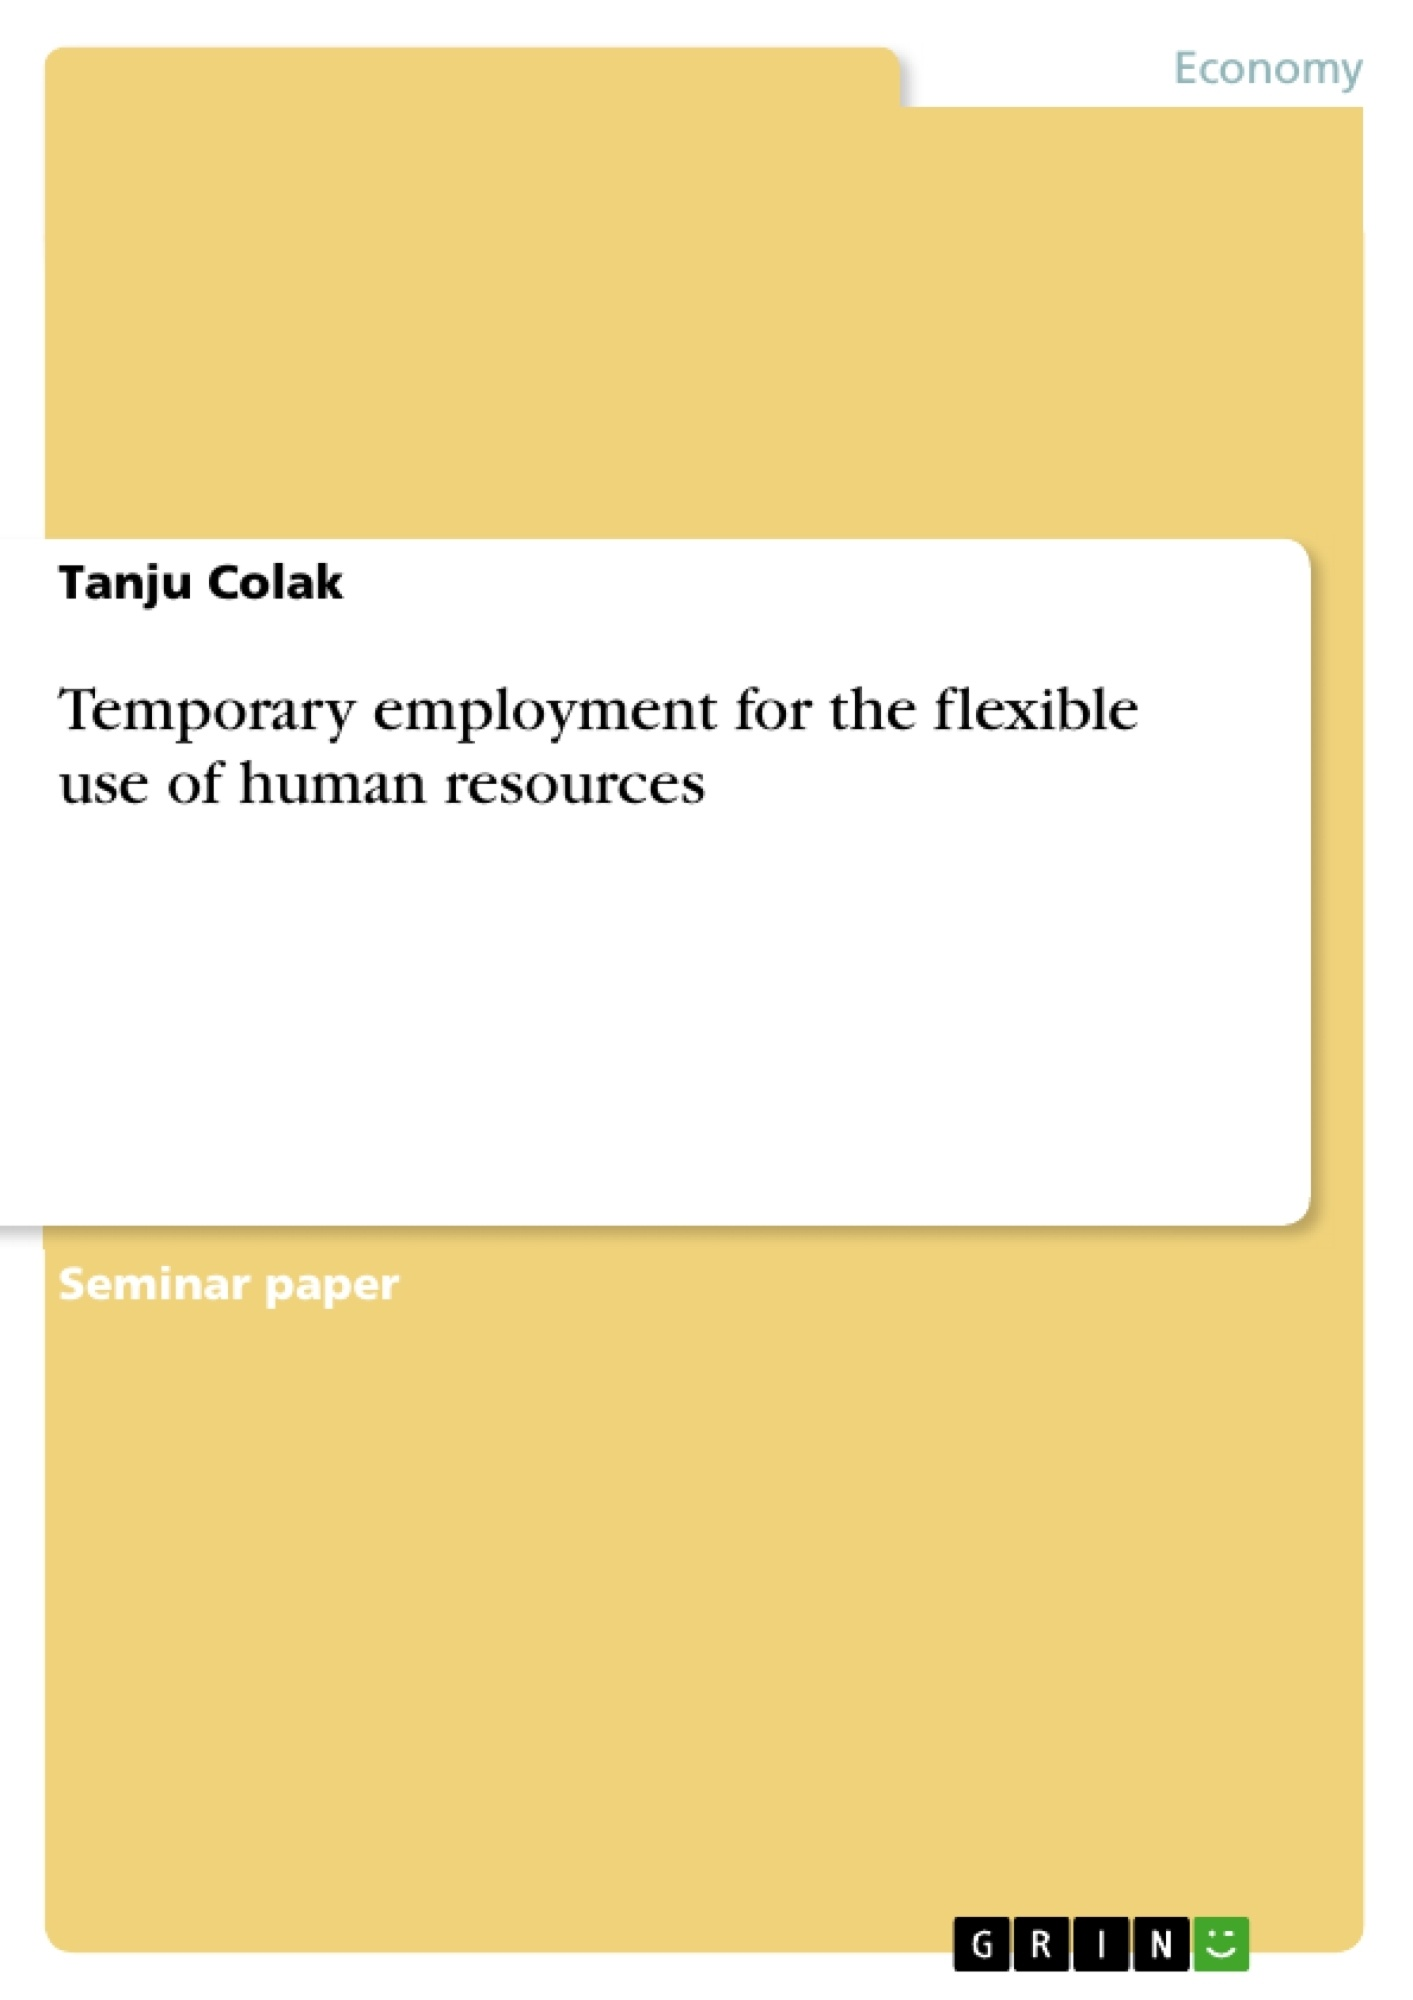 Title: Temporary employment for the flexible use of human resources